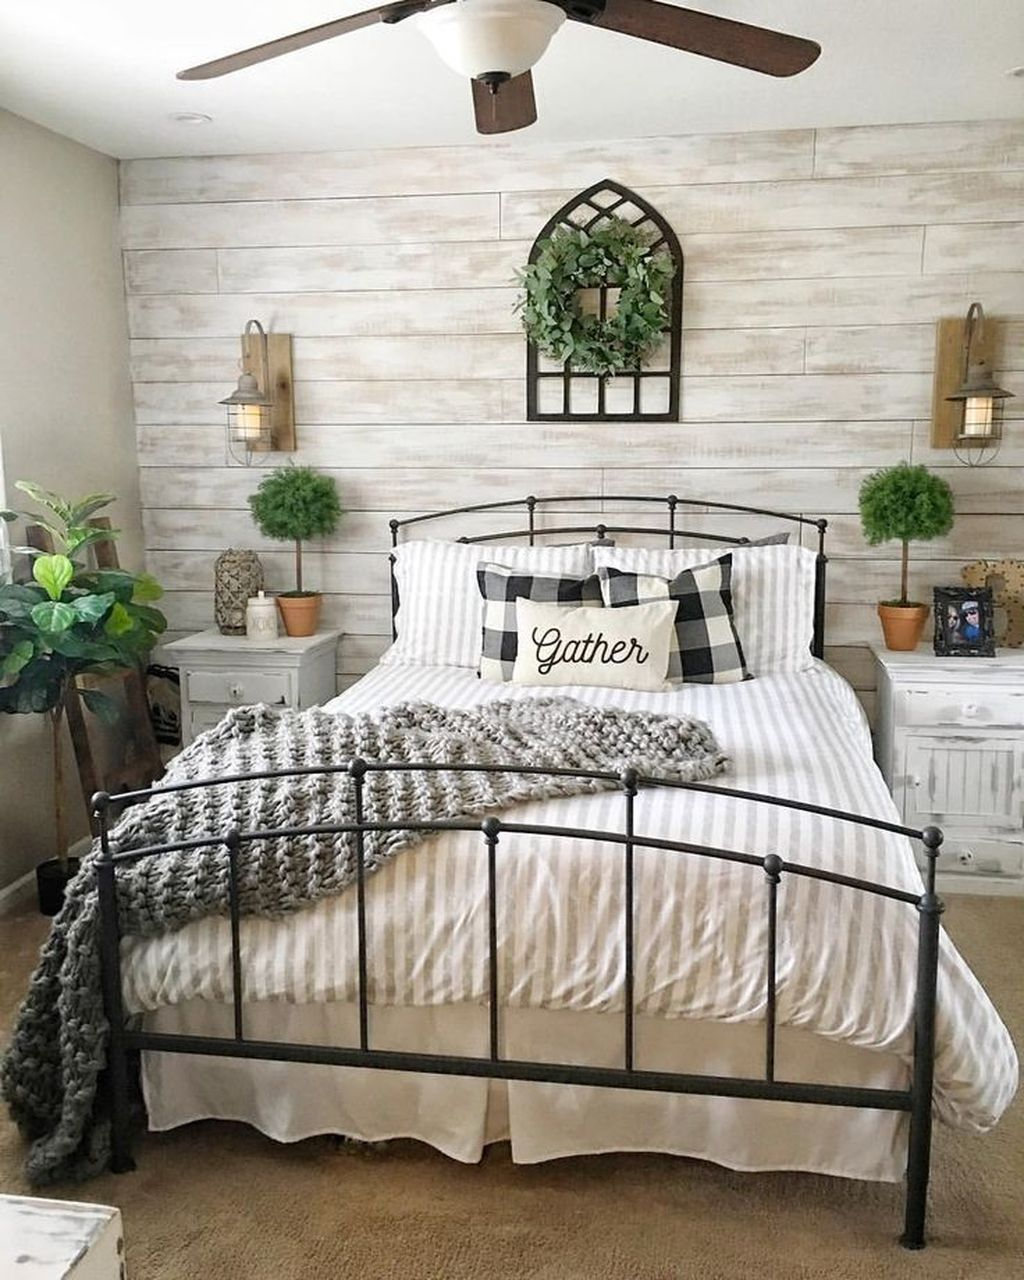 50 Elegant Farmhouse Bedroom Decor Ideas | Bedroom Ideas ...